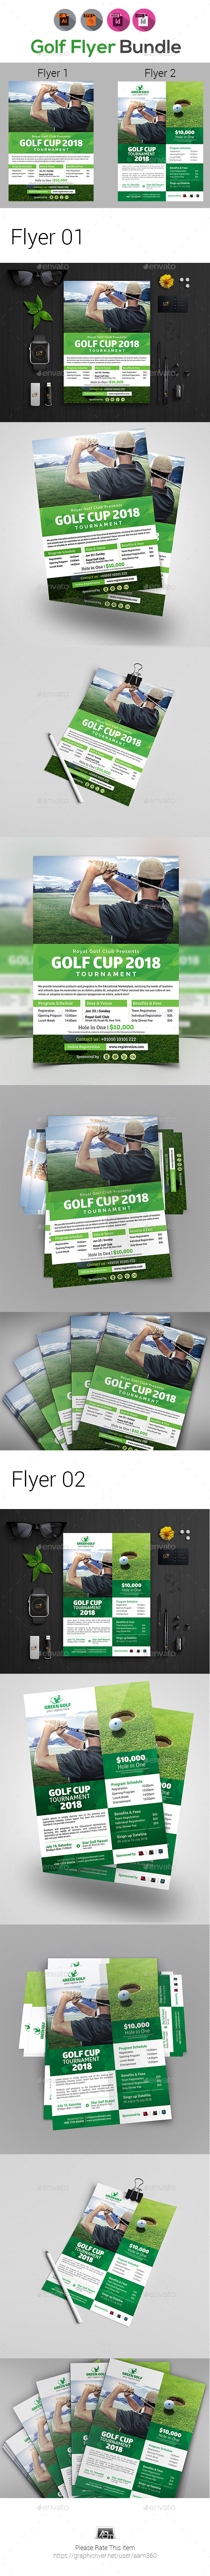 Golf Tournament Flyer Bundle V2 - Sports Events